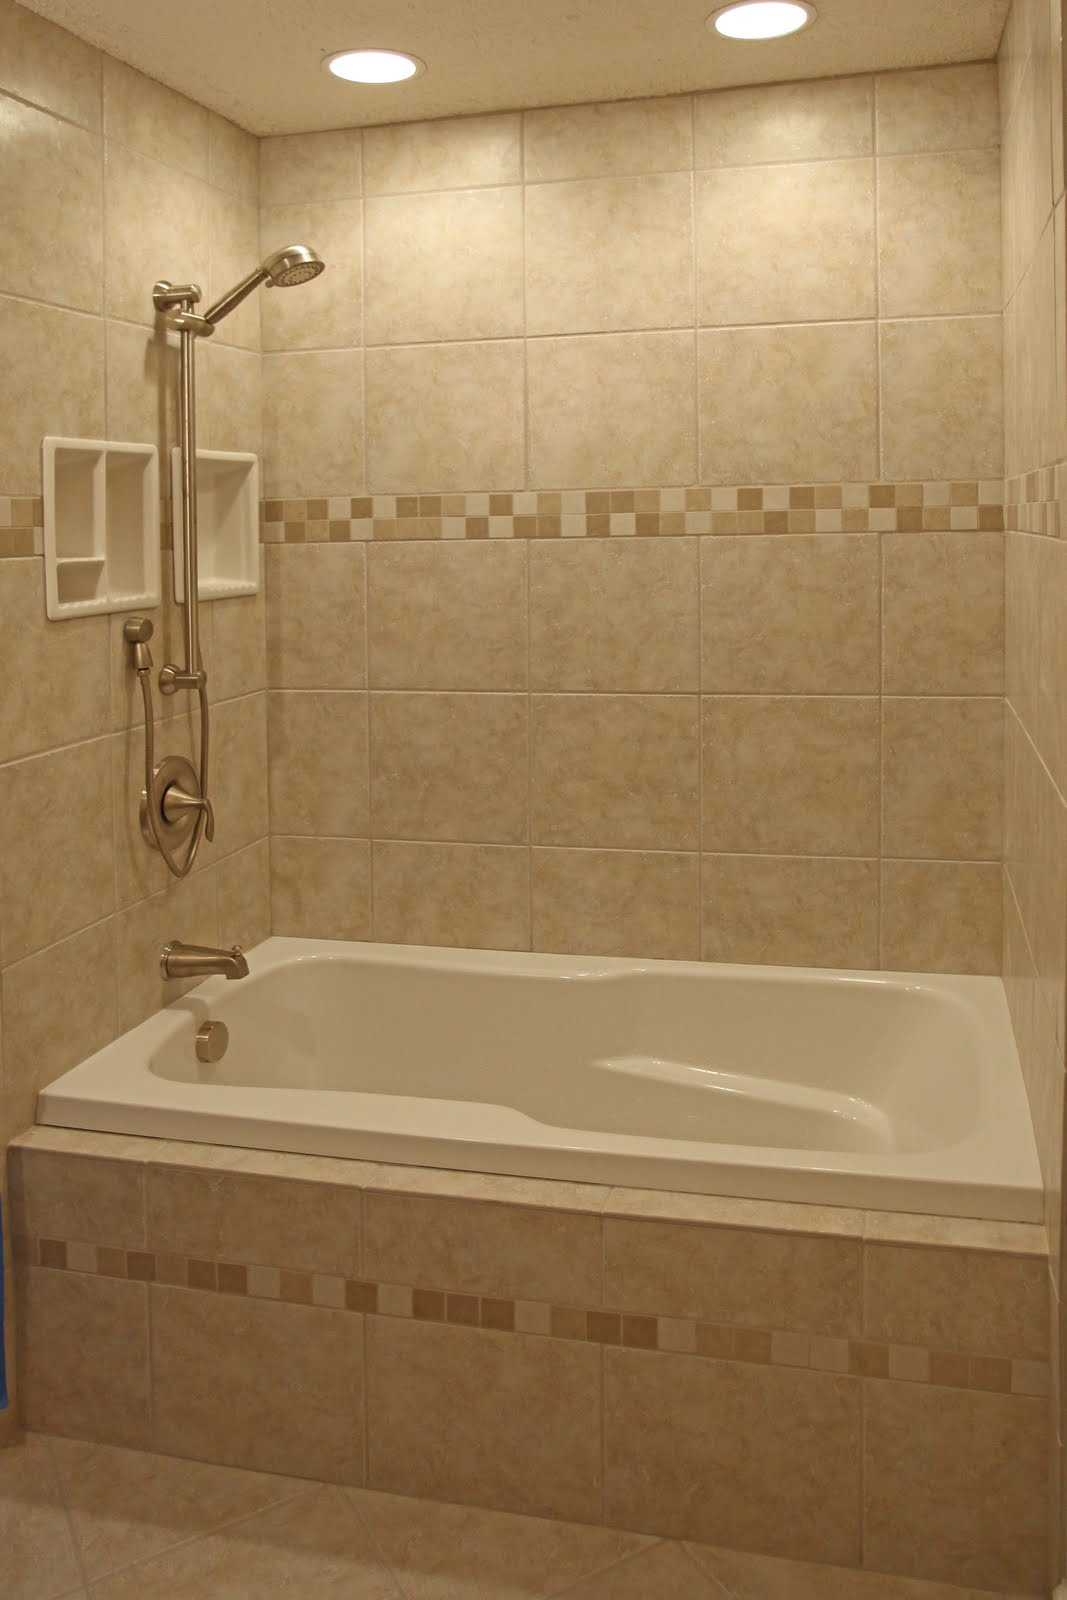 Bathroom shower tile design ideas bathroom designs in for Bathroom yiles